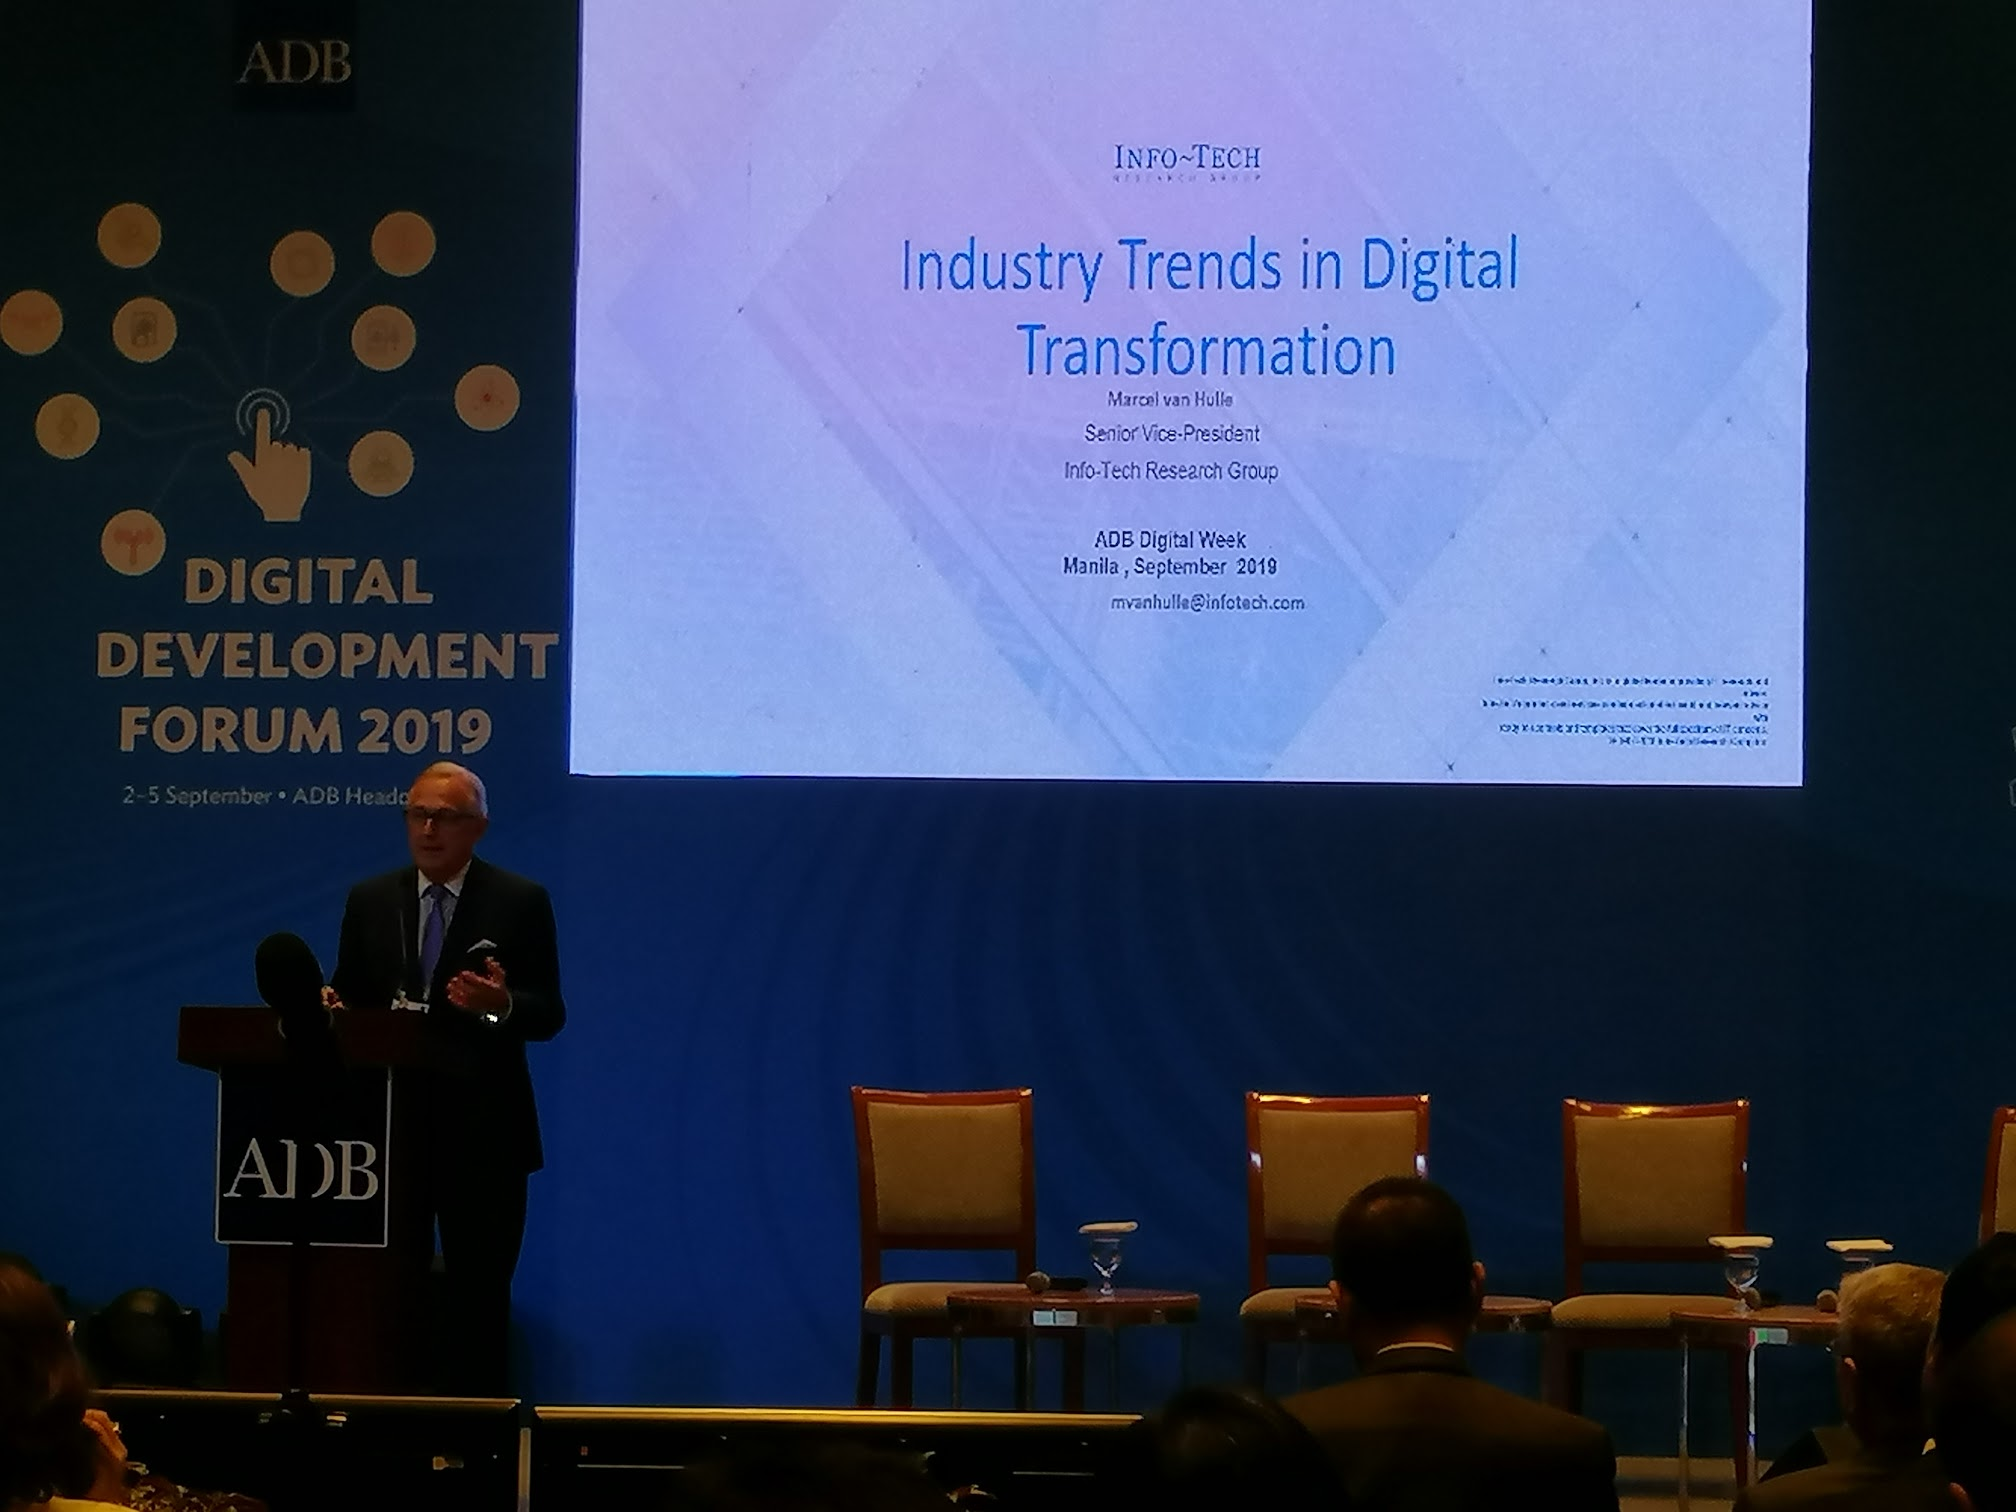 9:22 a.m. - Keynote address from Marcel van Hulle, Senior Vice President of the Info-Tech Research group discusses the industry trends in Digital Transformation.